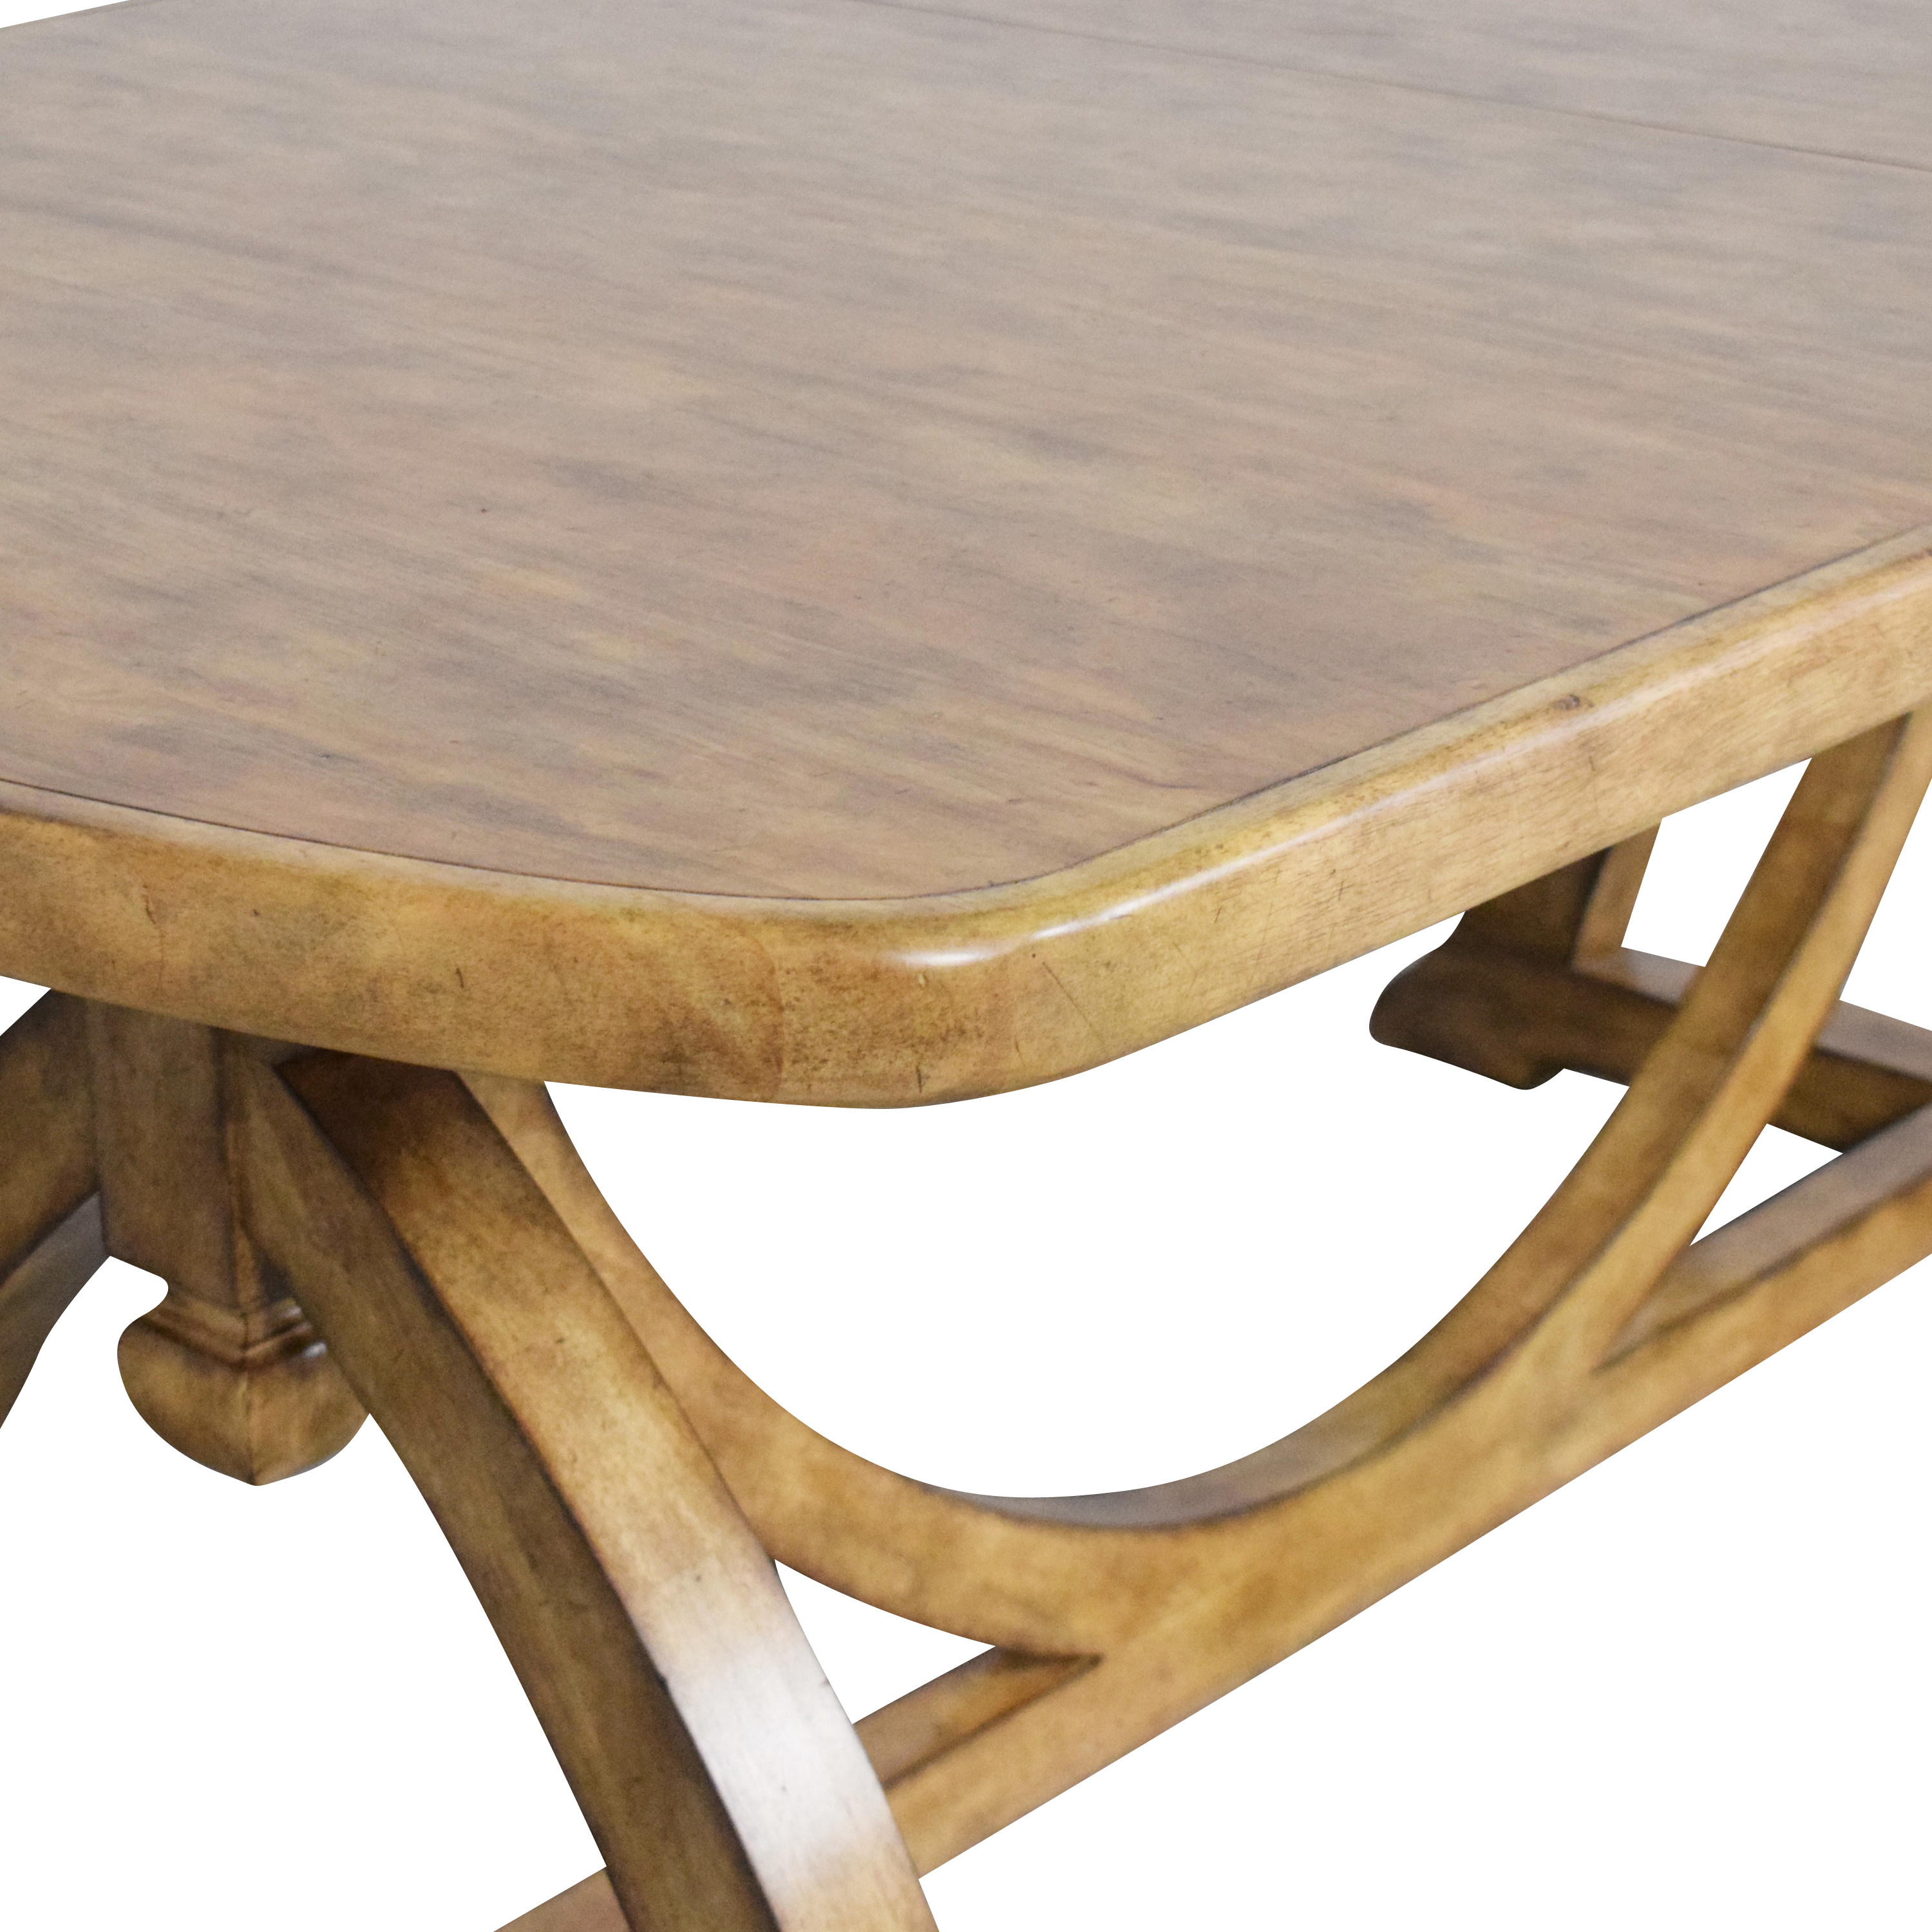 Thomasville Thomasville Reinventions Pacific Trestle Dining Table light brown